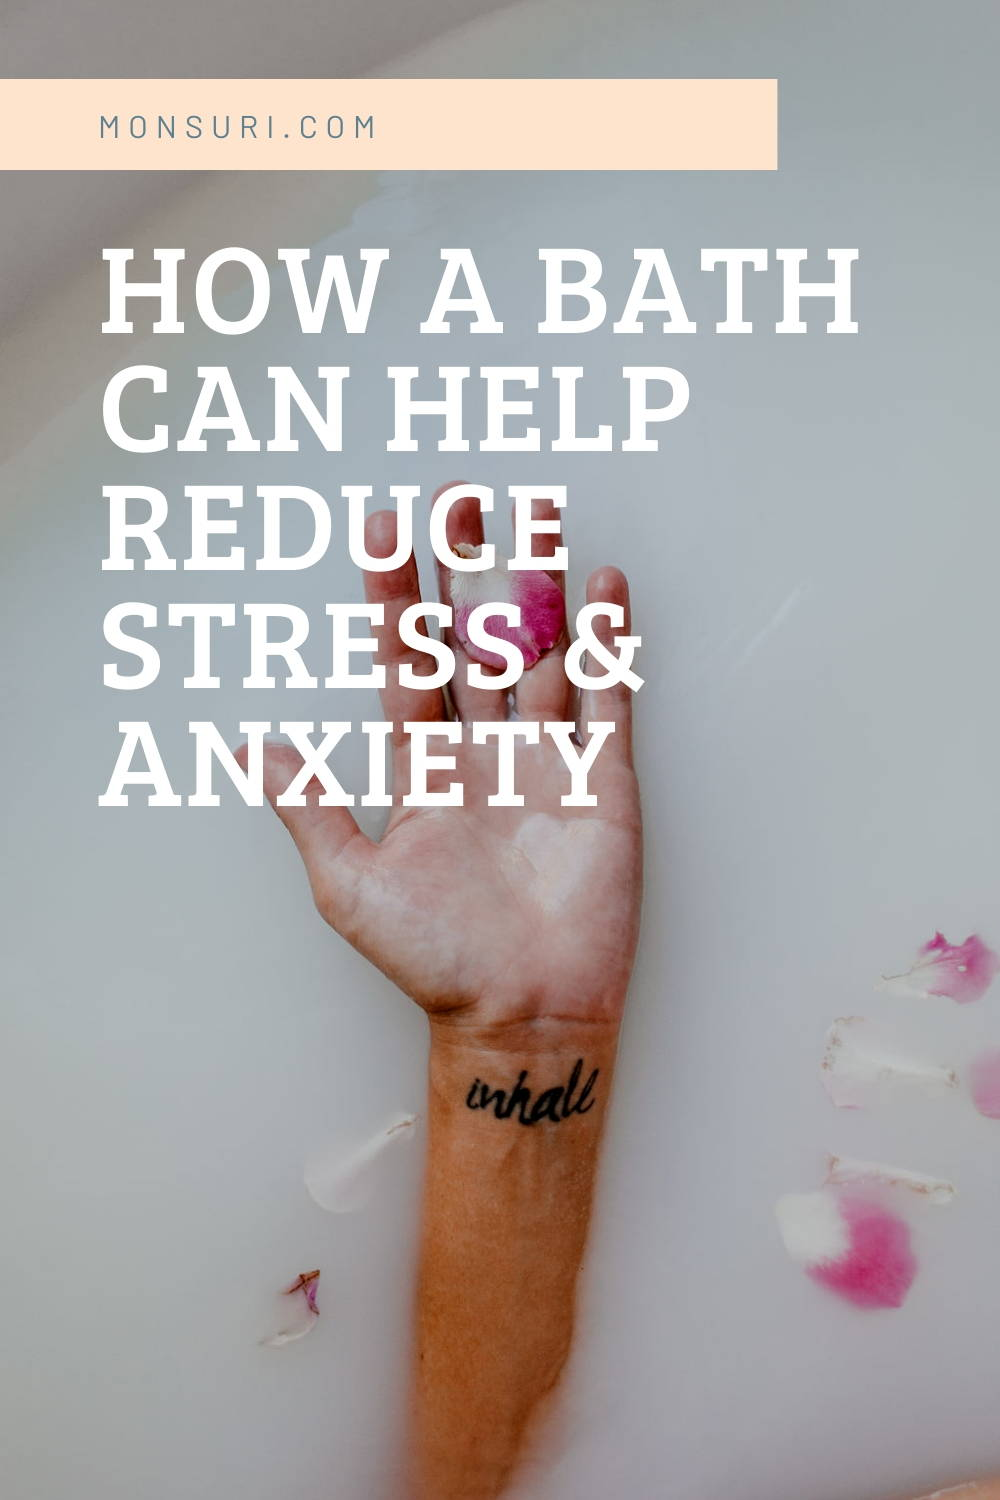 Can a Bath Relieve Stress & Reduce Anxiety?